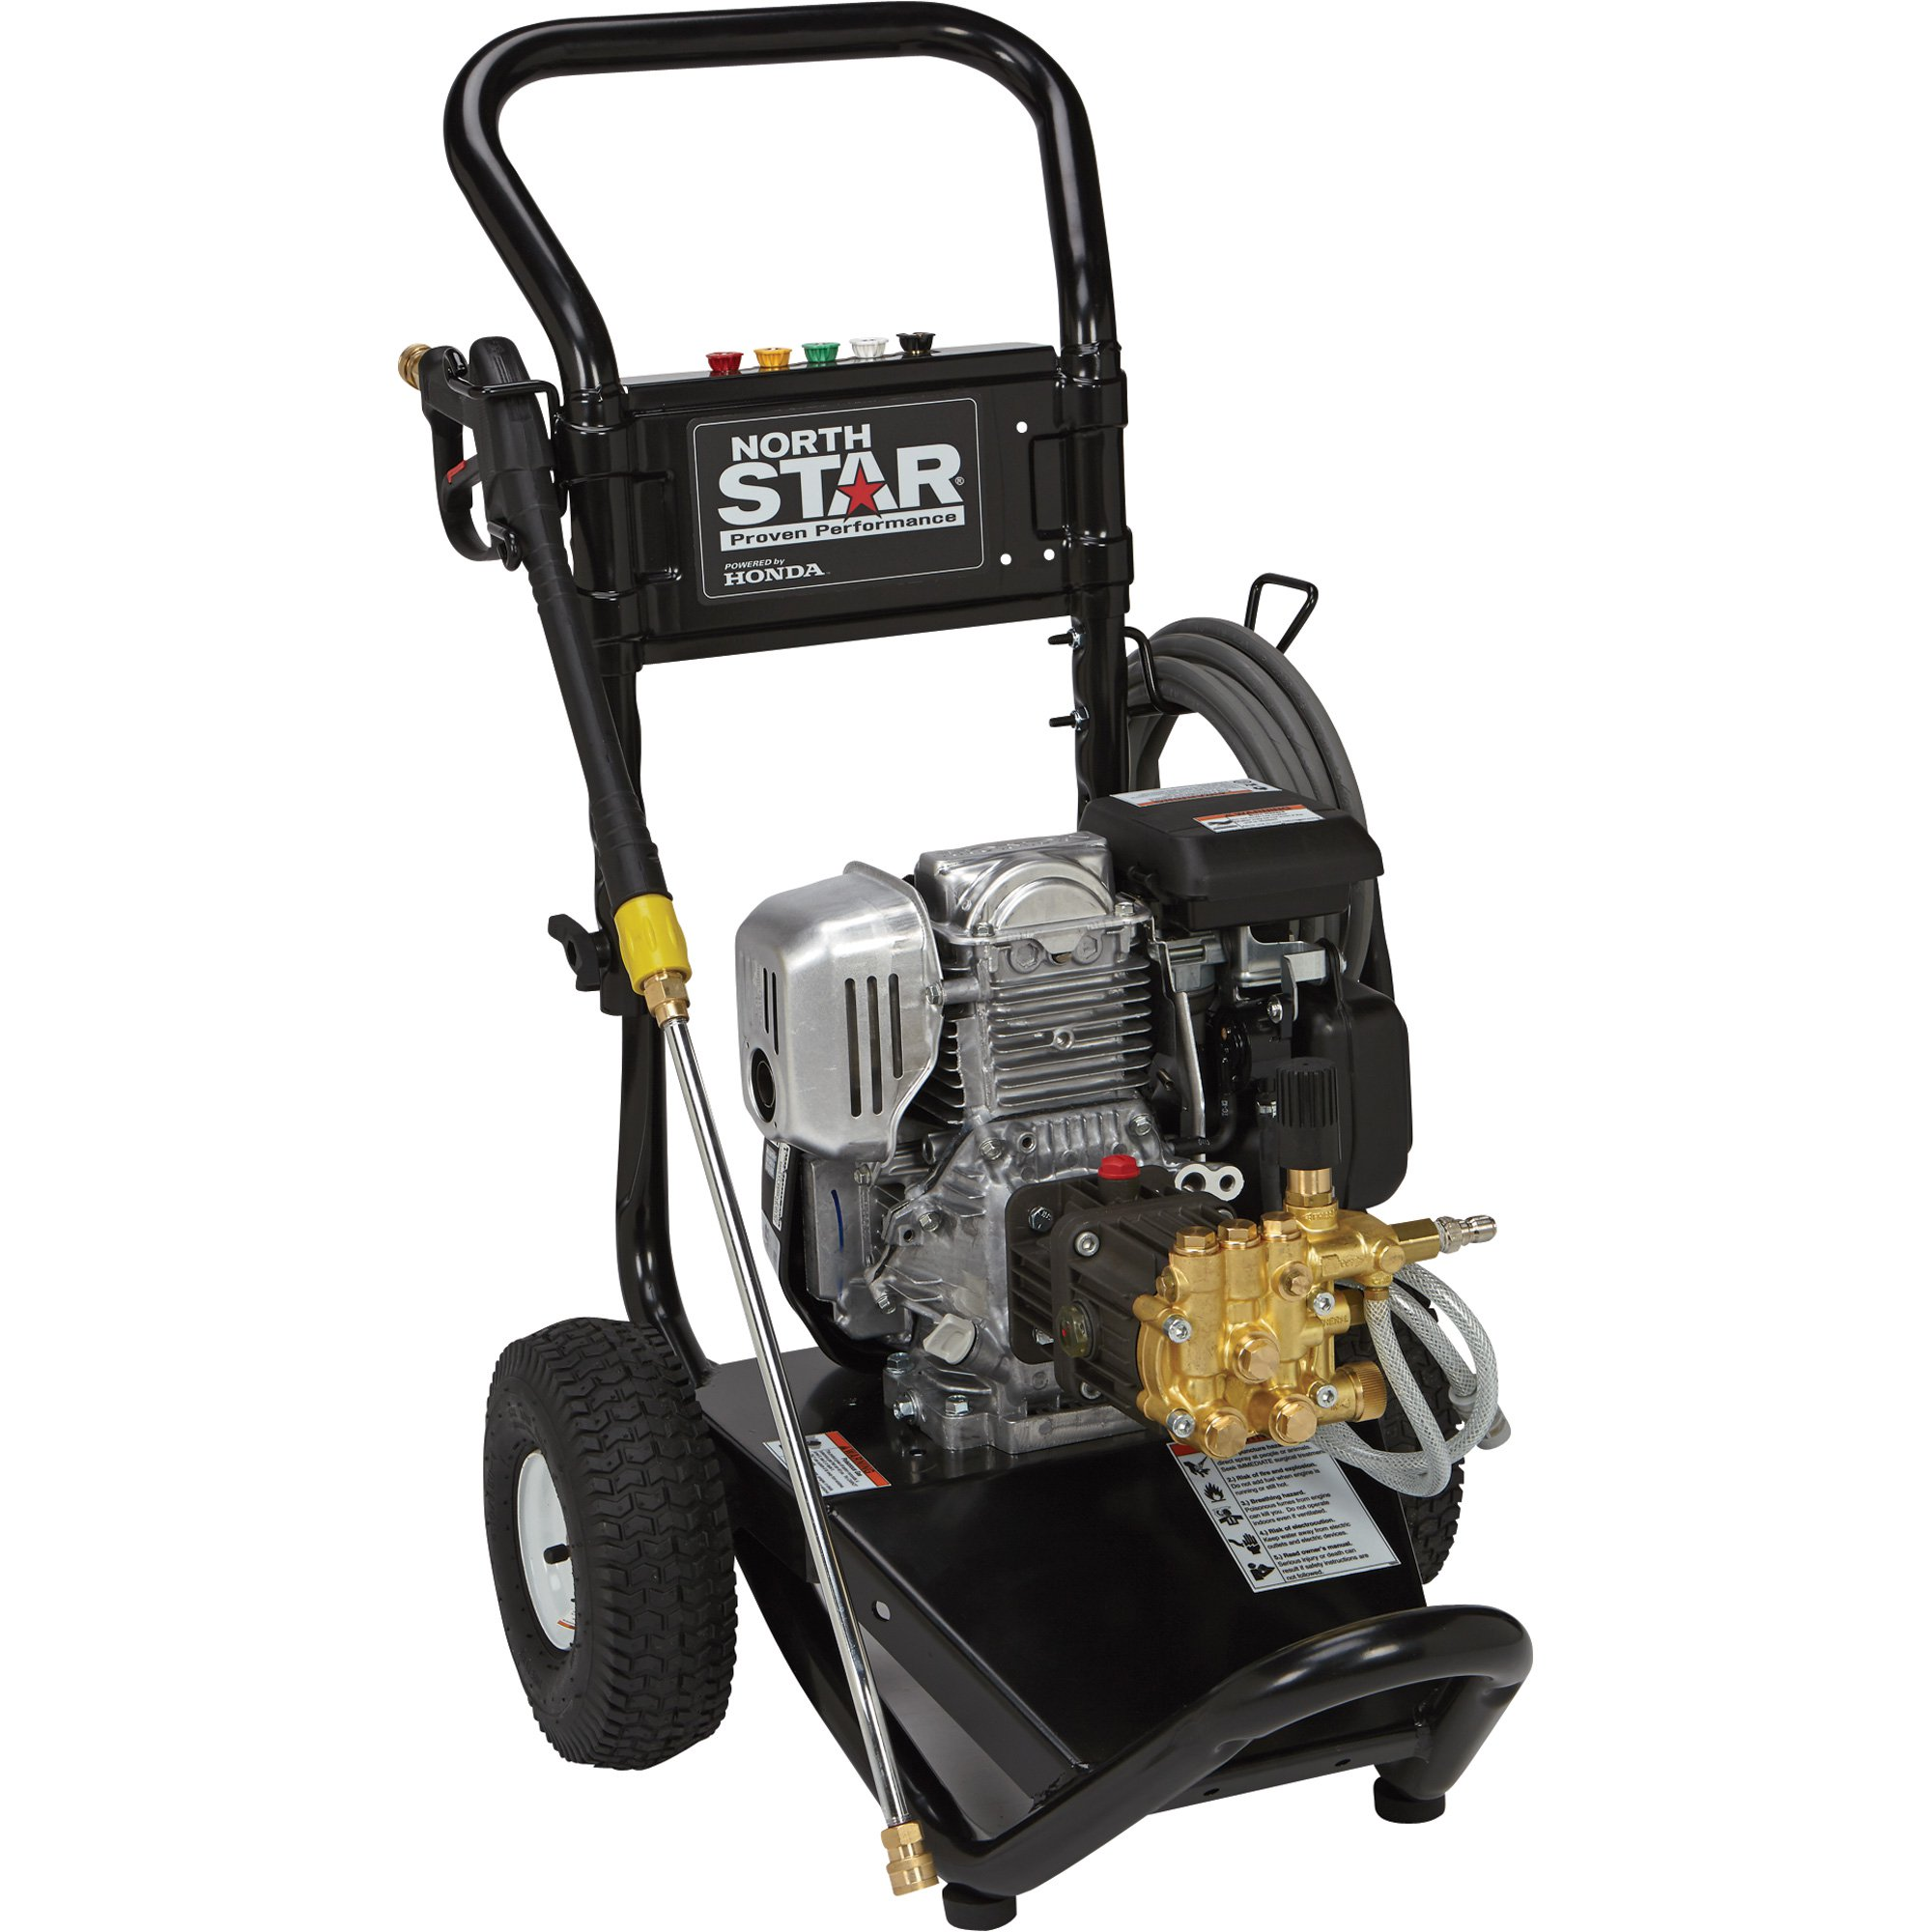 NorthStar 15775440 Gas Cold Water Pressure Washer 3000 PSI 2.5 GPM Honda Engine Freight Included